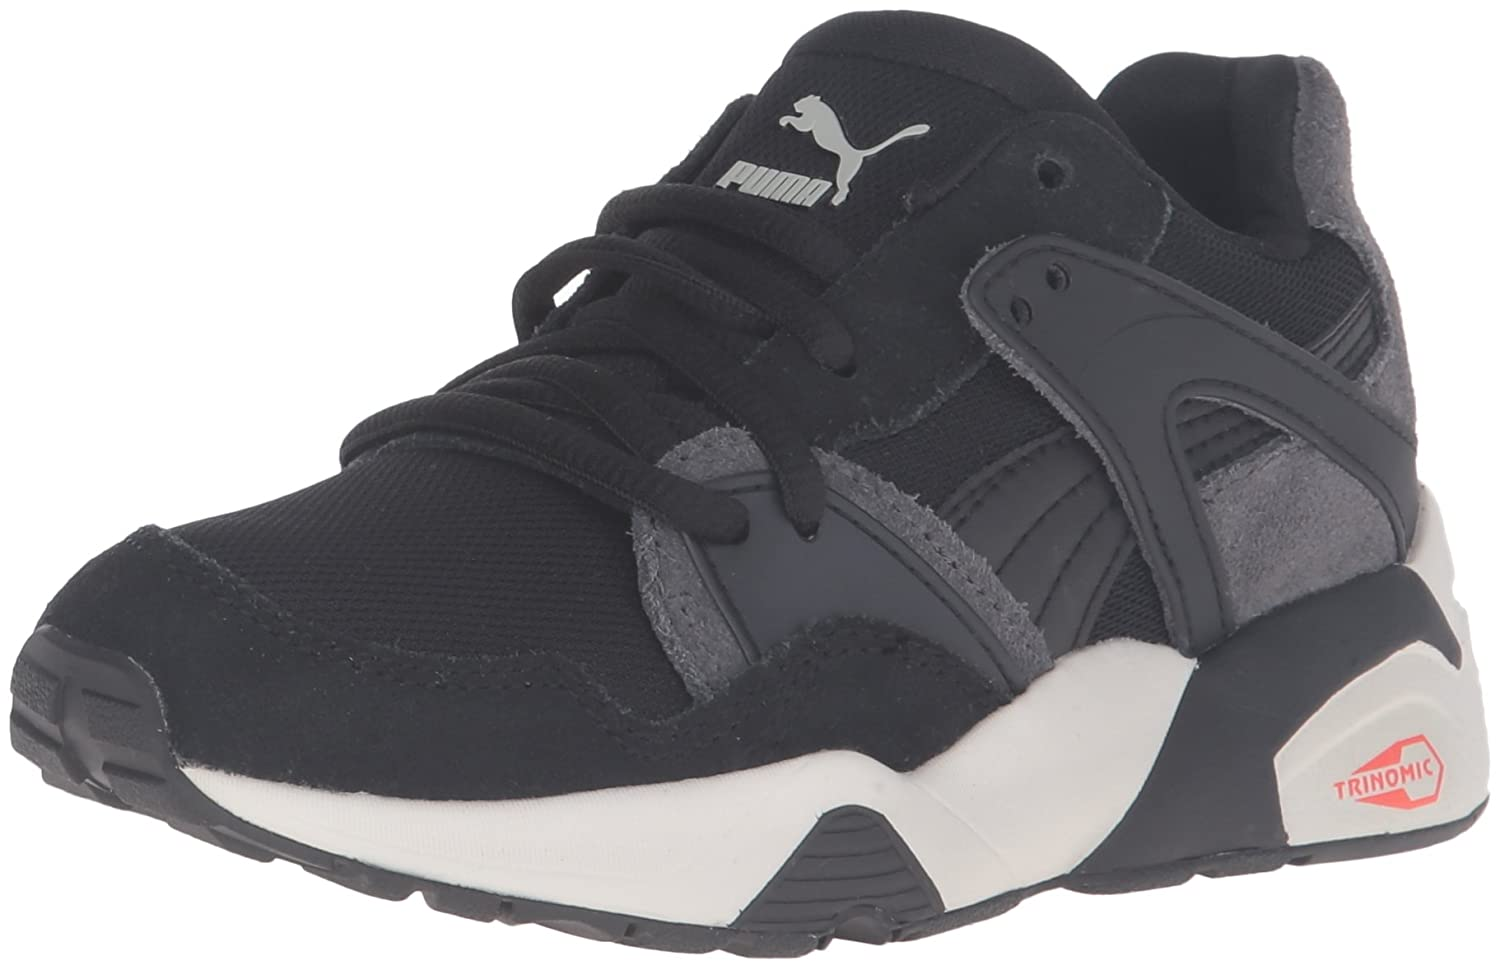 Puma Blaze PS Sneaker  1.5 C US Little Kid|Puma Black/Asphalt